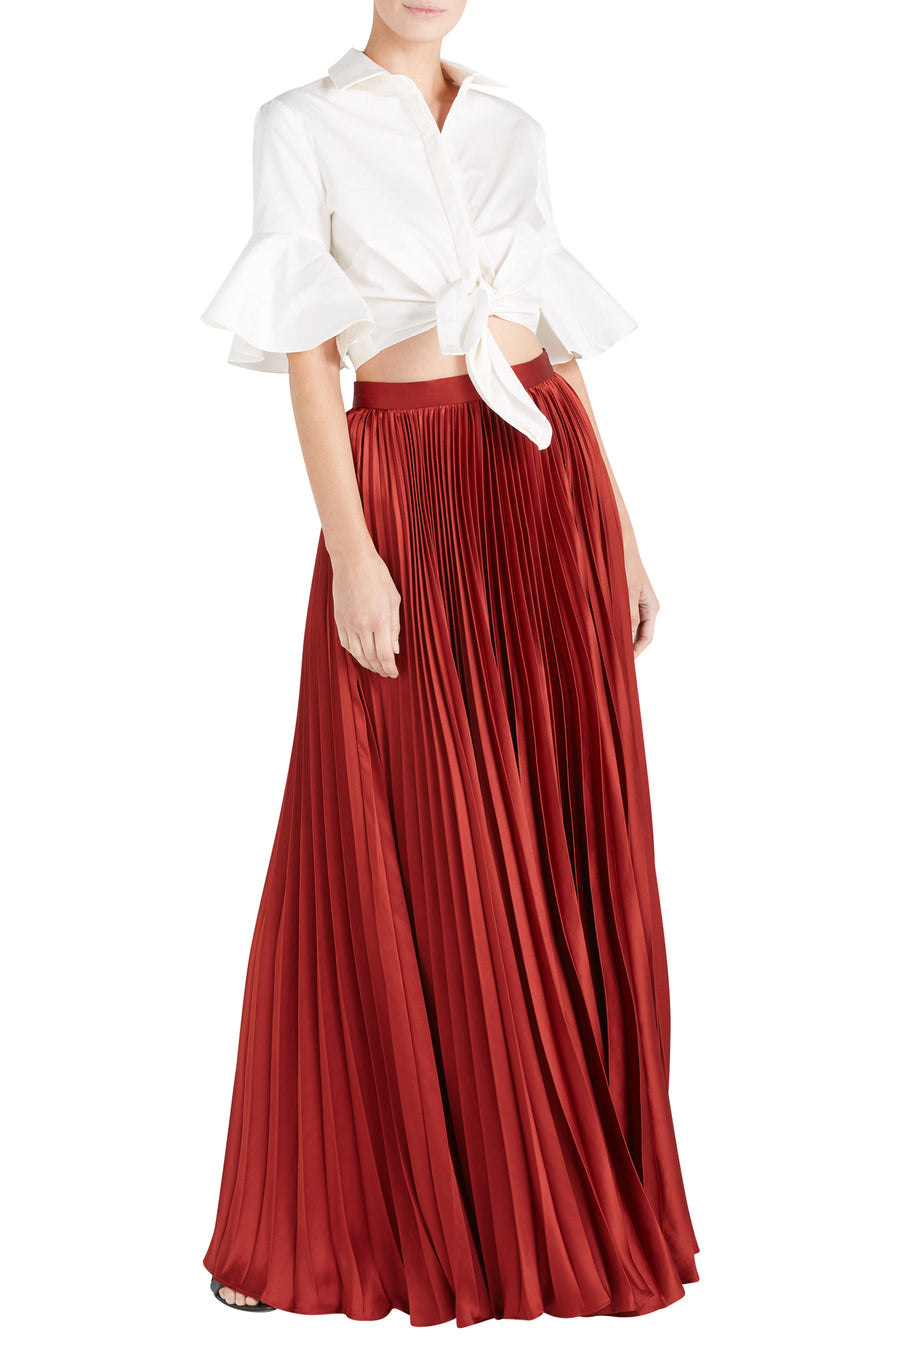 ANNIE PLEATED SKIRT